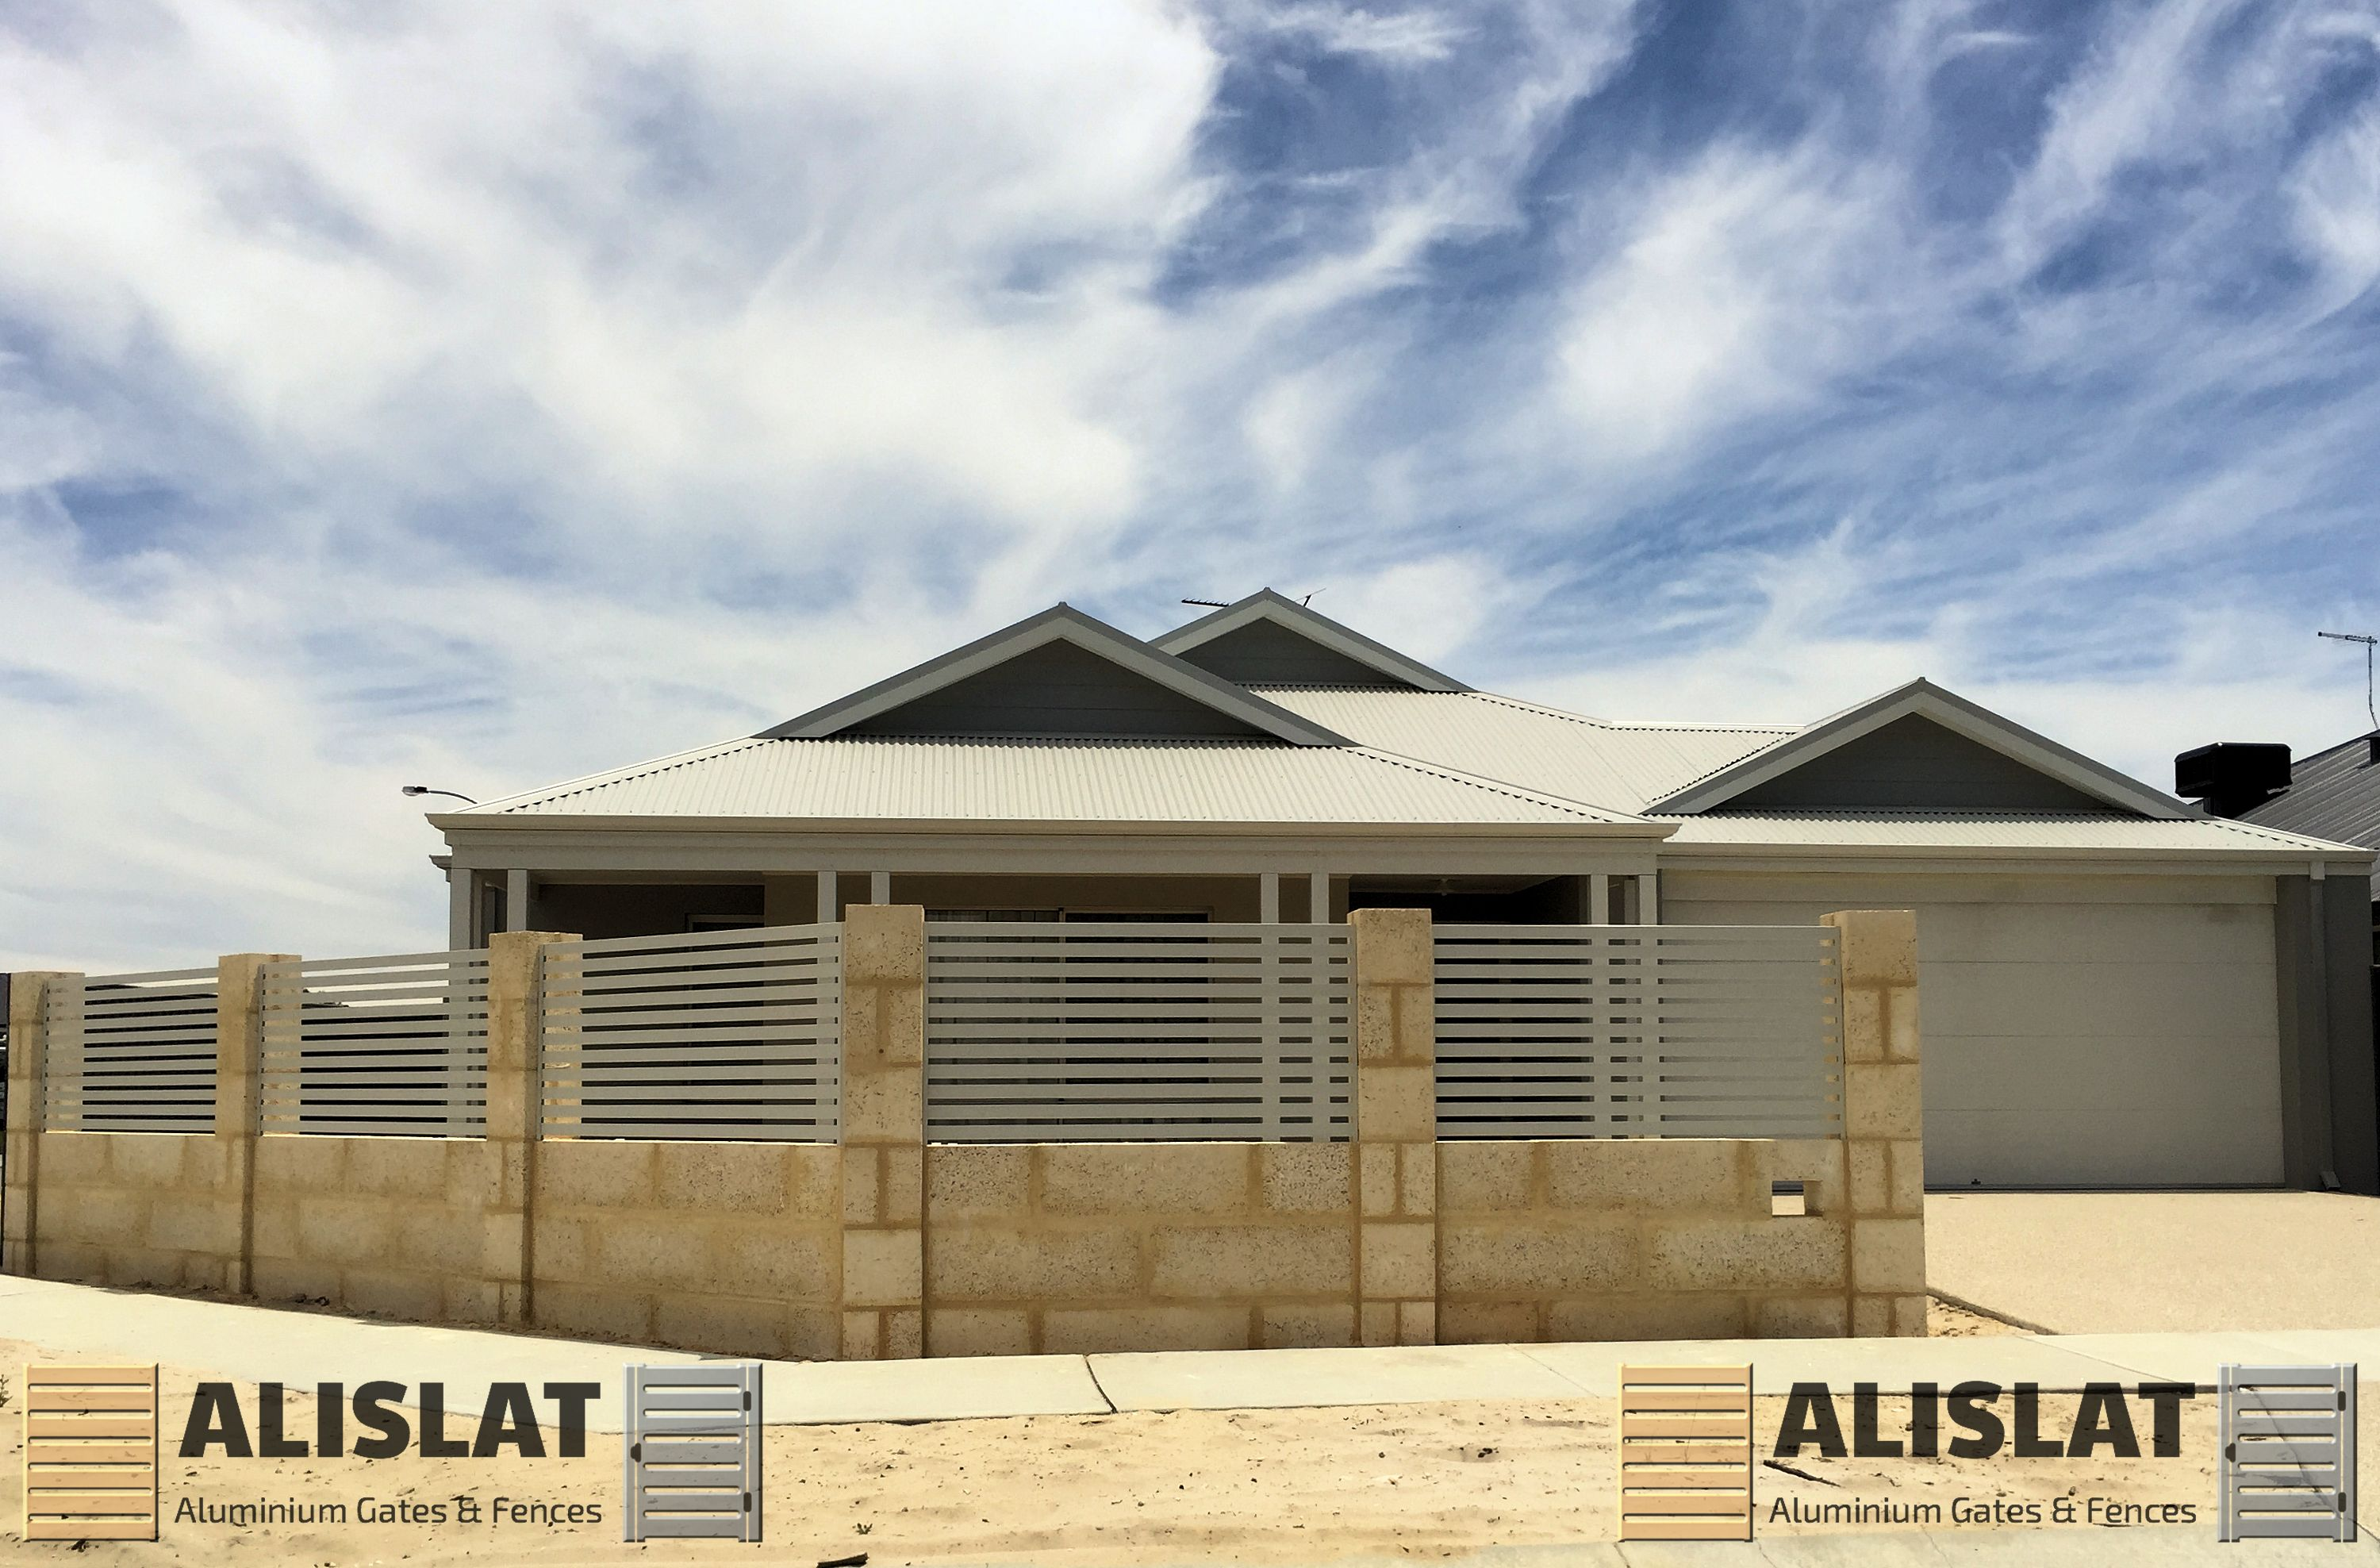 ALISLAT COUNCIL REGULATION SURFMIST SLATS